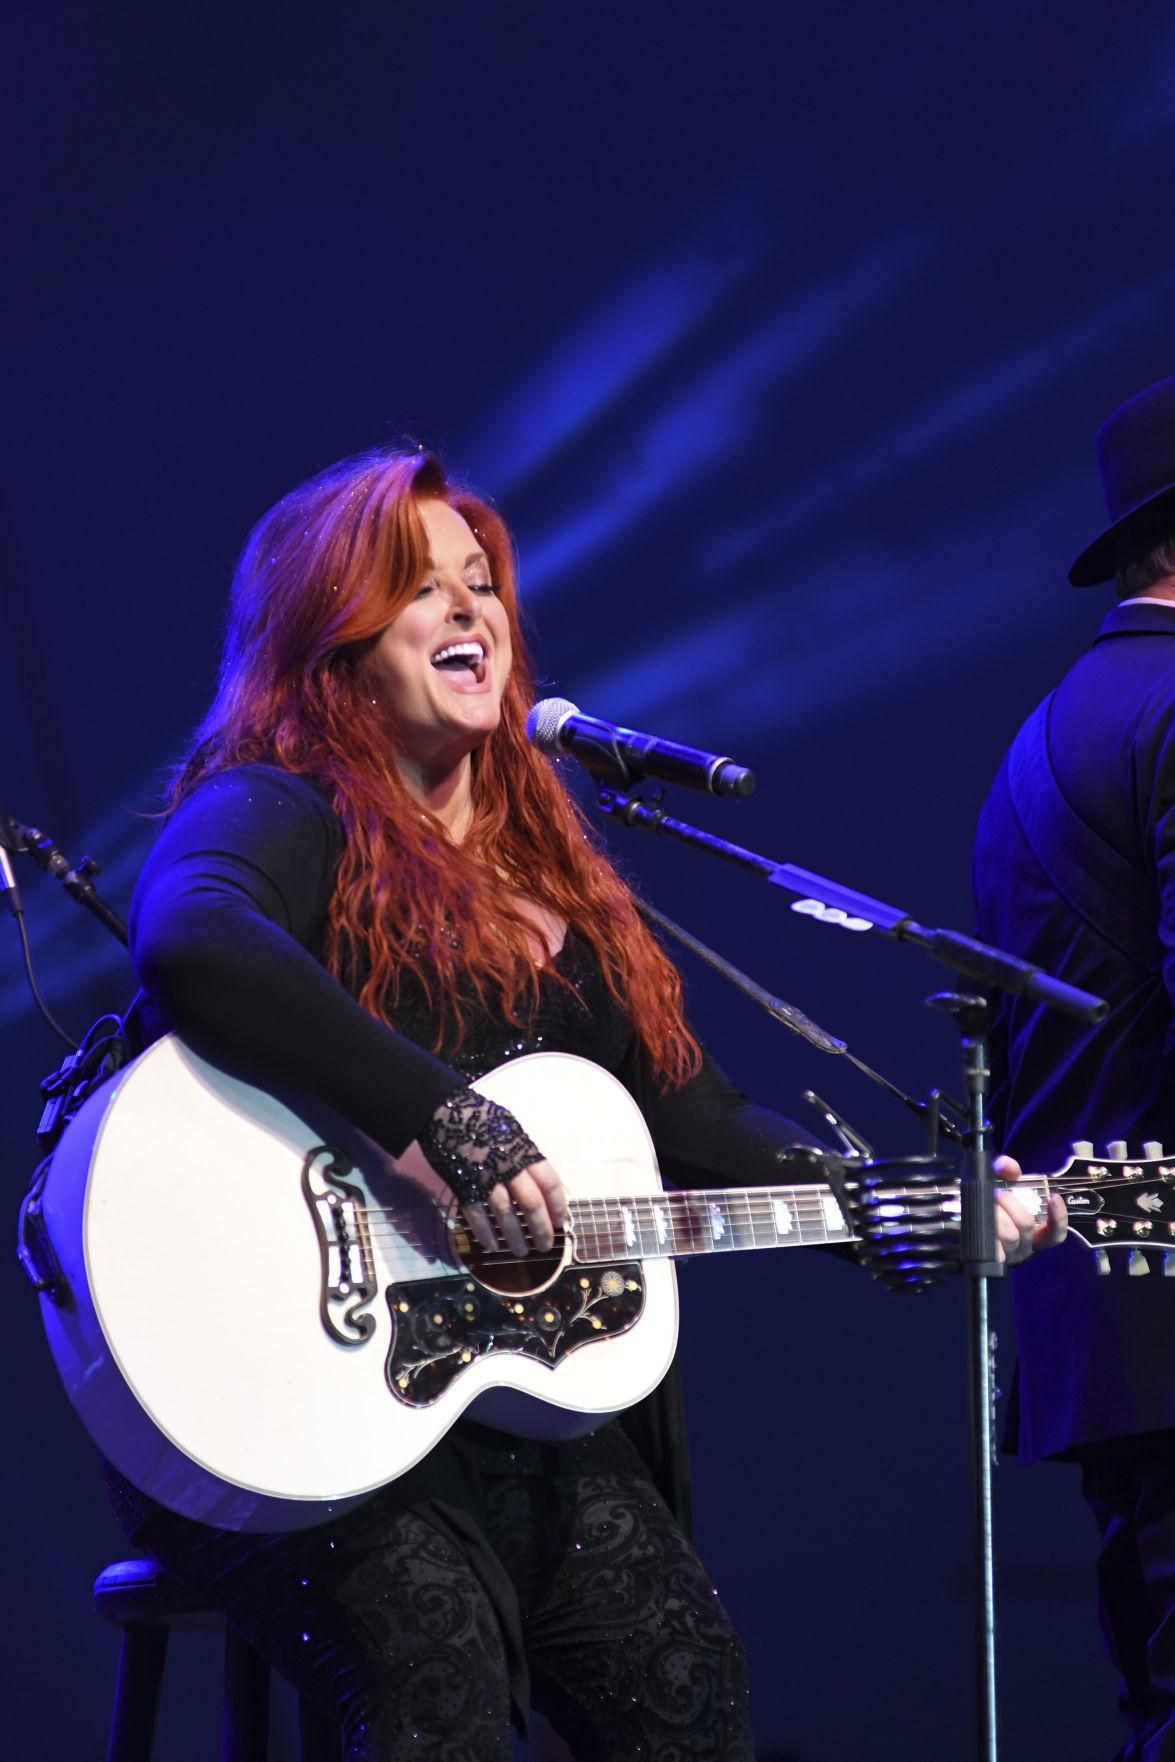 Gallery wynonna and the big noise in 2020 with images